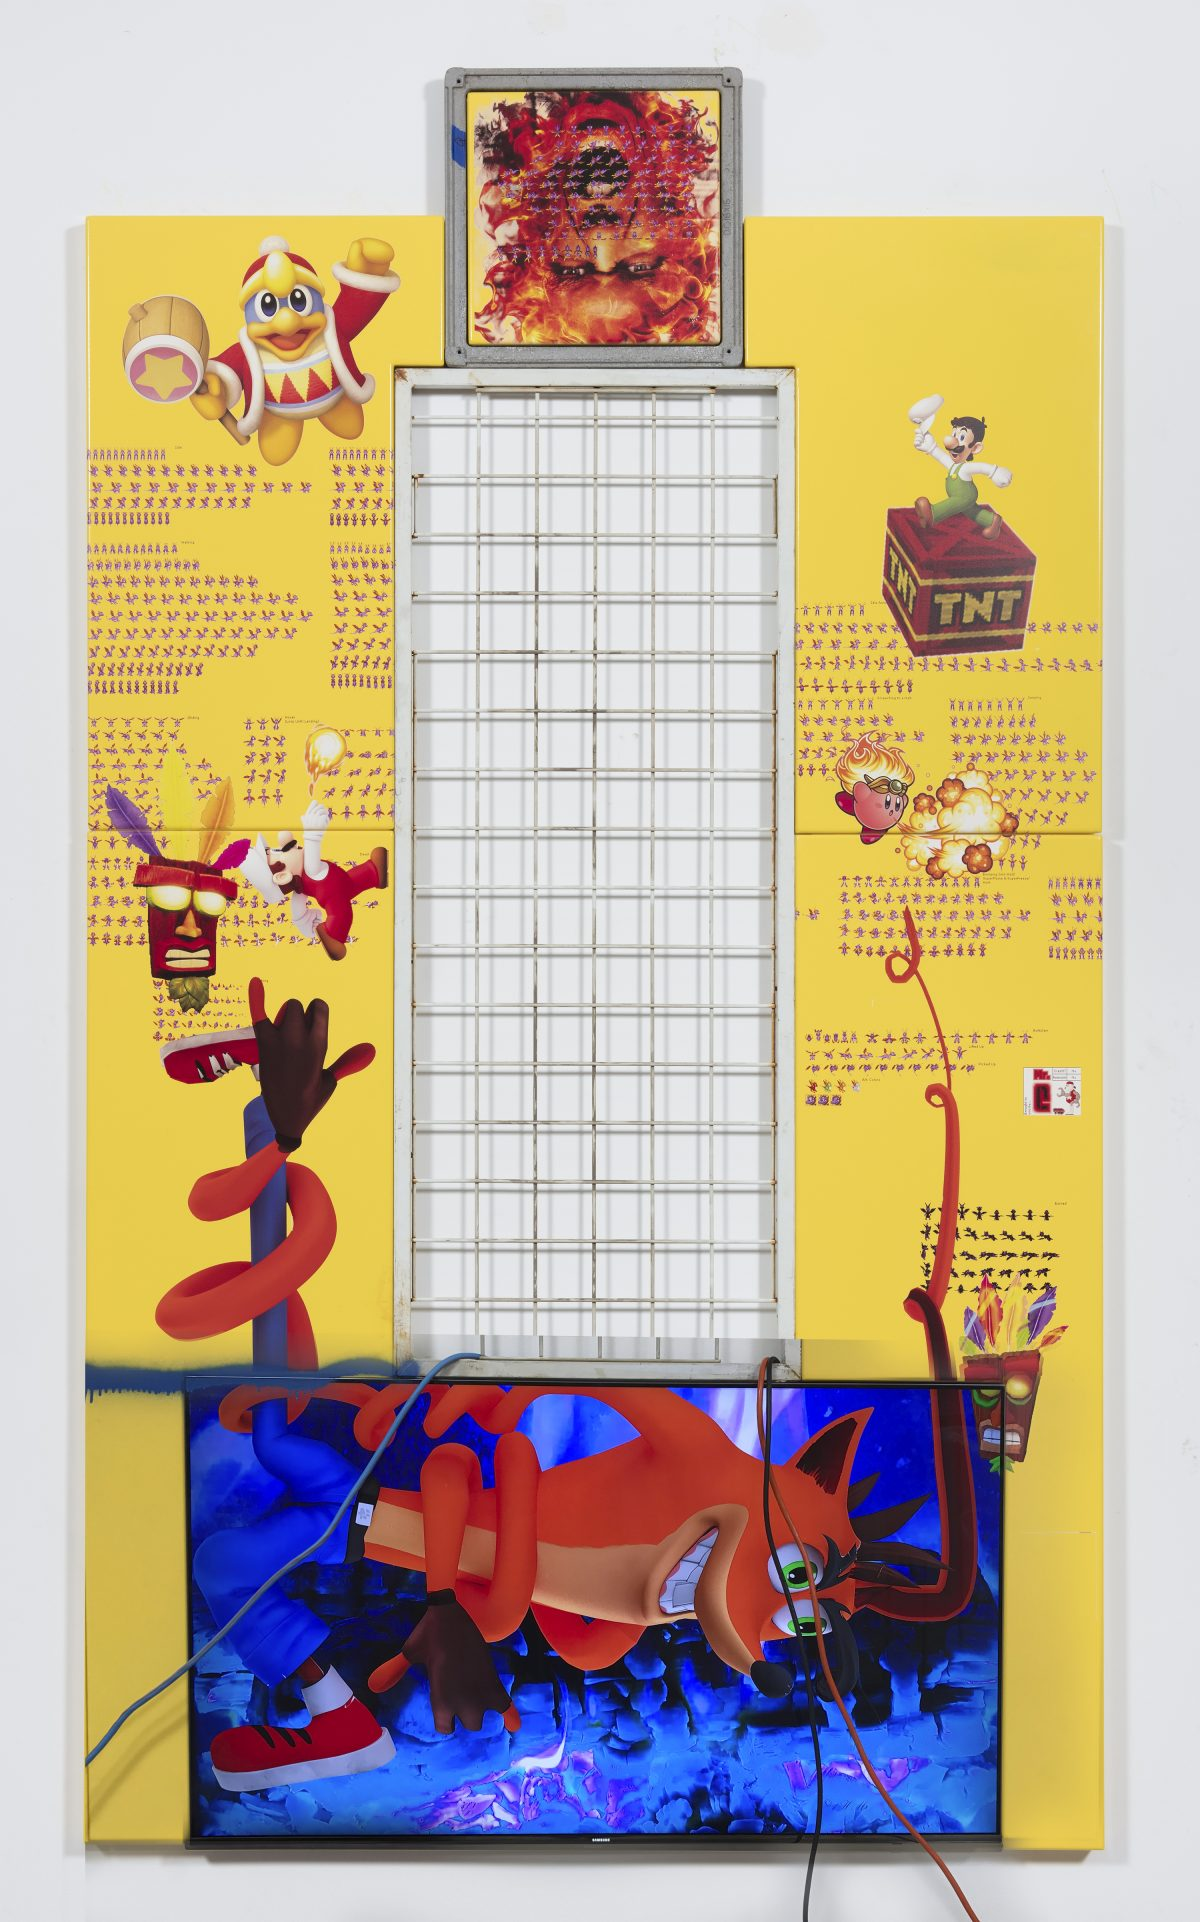 Yung Jake. <em>crash bandicoot (and spyro fire mario, fire luigi, fire kirby, king dedede and aku aku)</em>, 2017. UV print, spray paint, tape and ink on powder coated steel, found metal and monitor; video, 105 x 60 inches